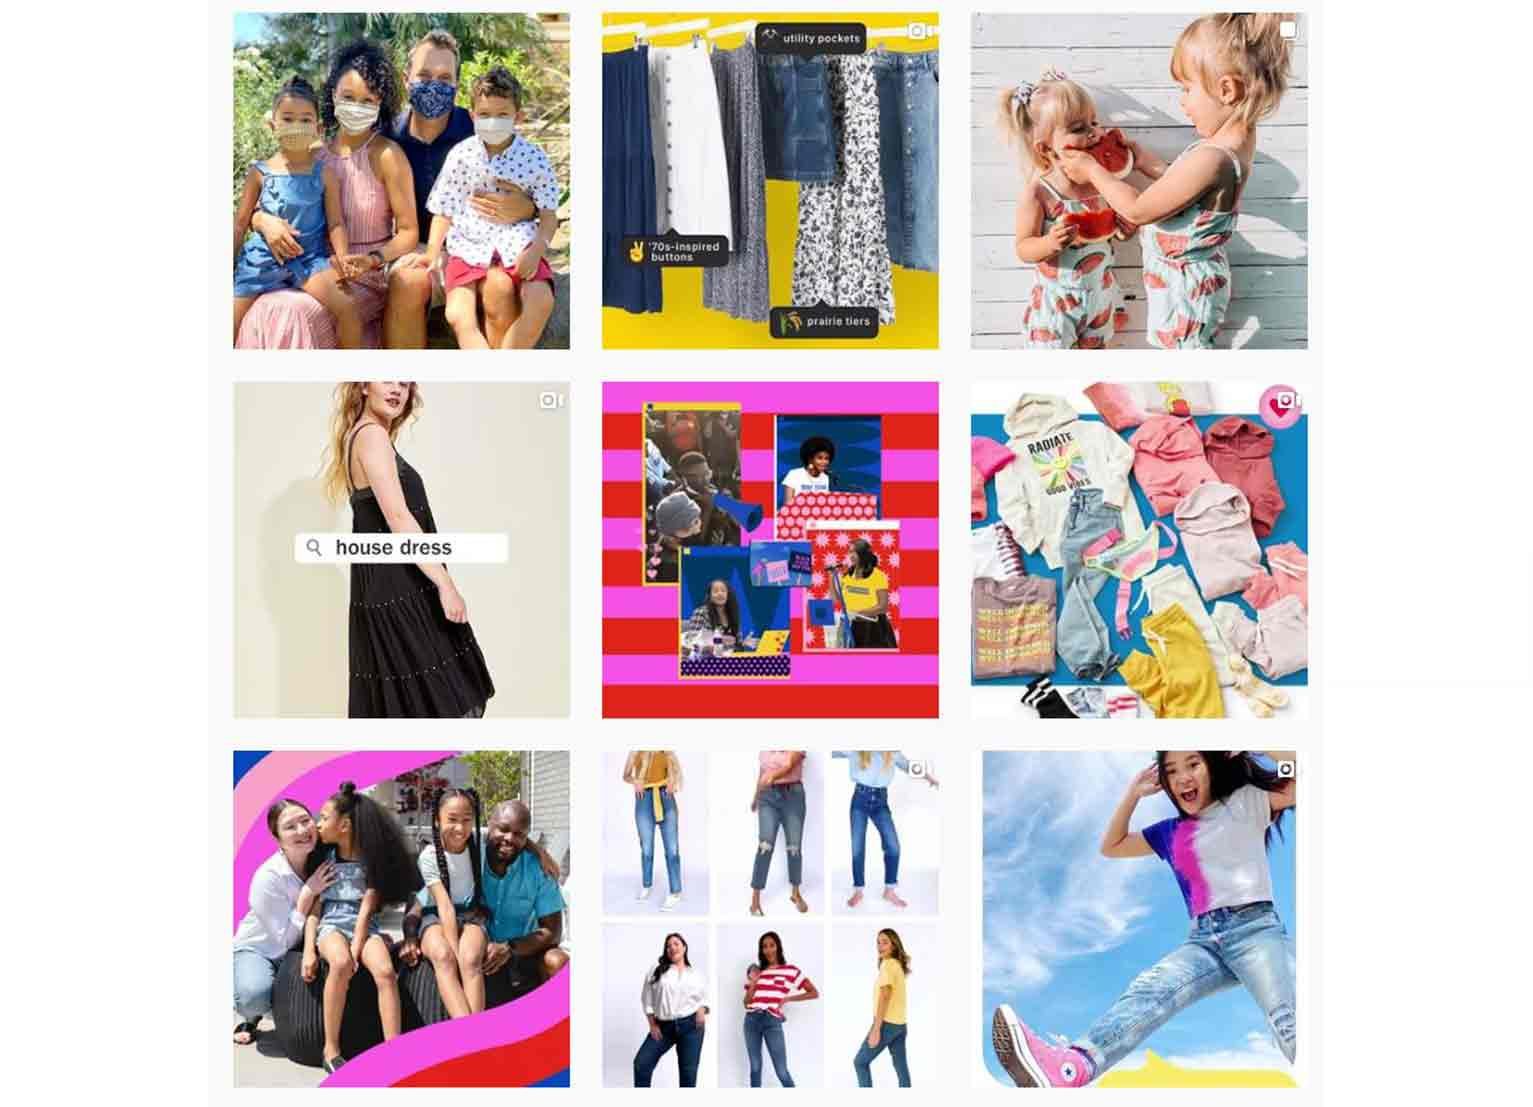 Old Navy's Instagram campaign features their latest fashionable apparel.